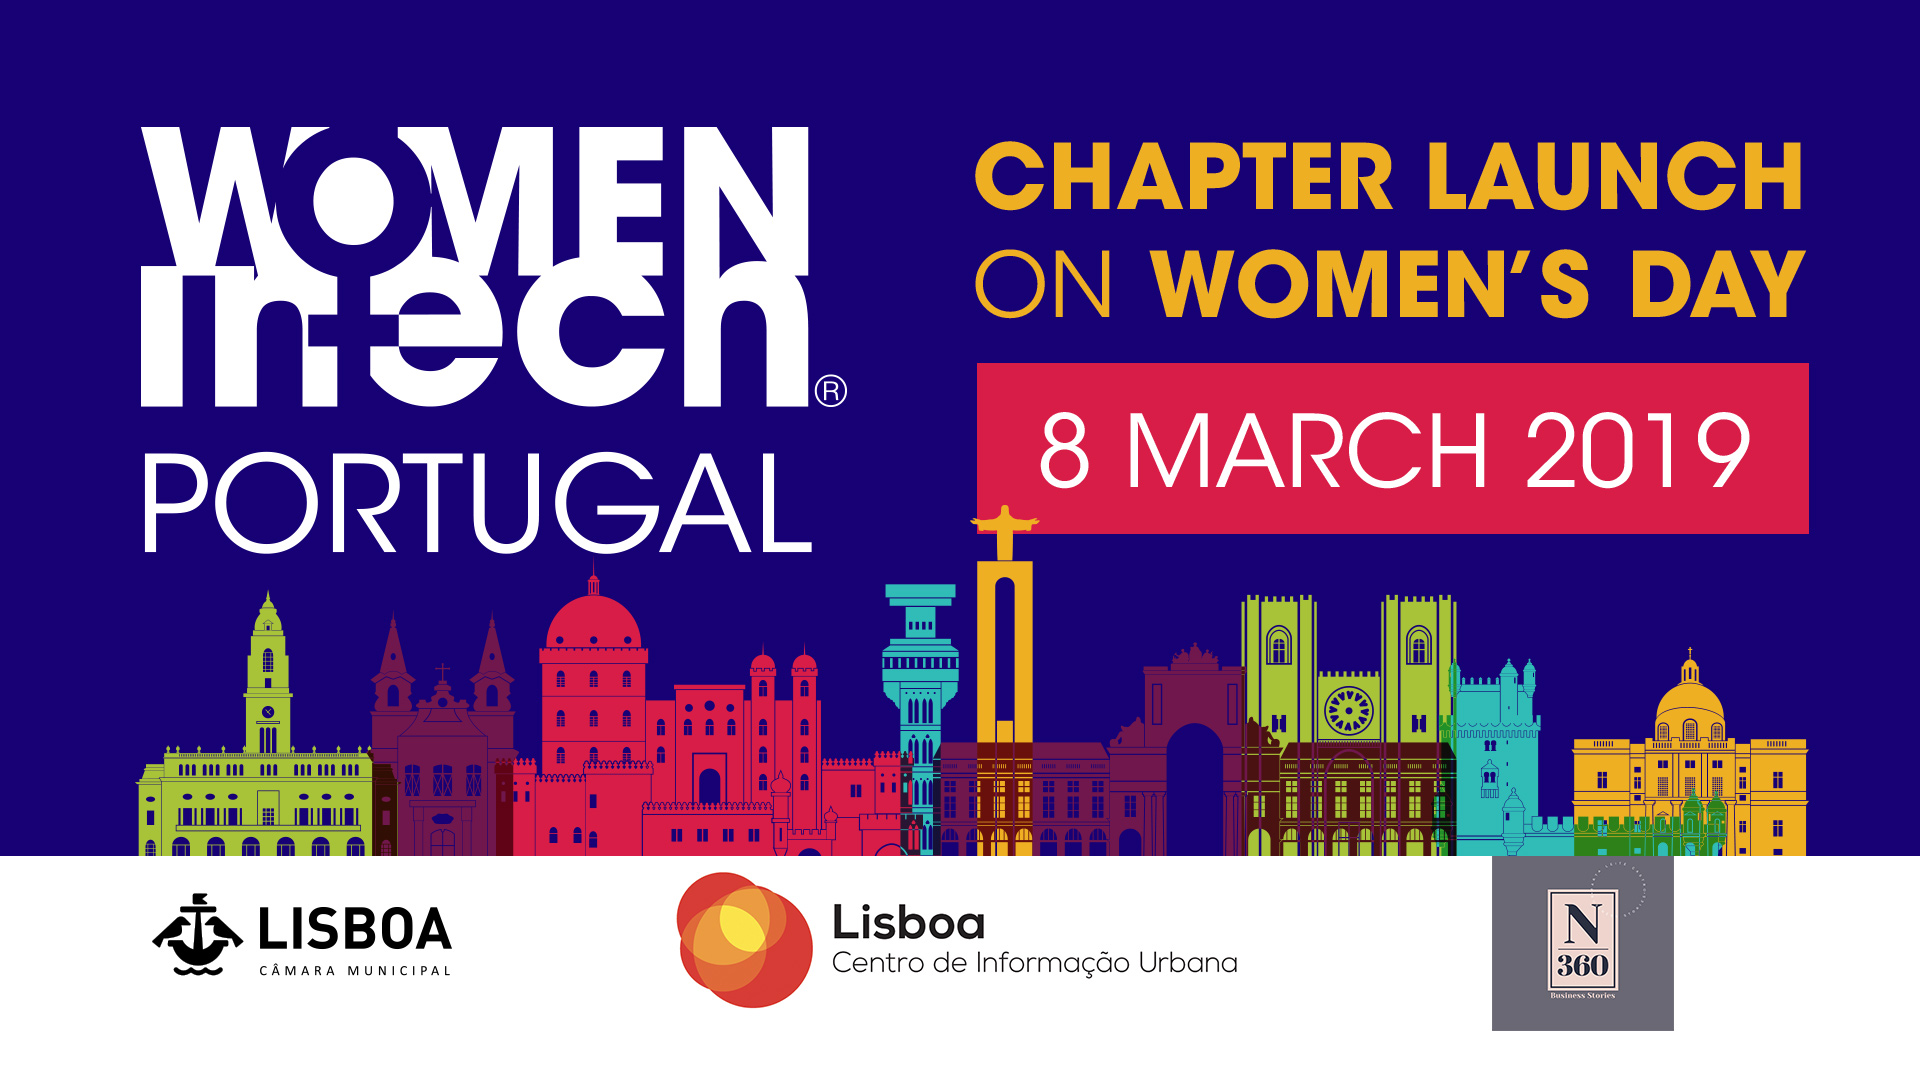 Women In Tech Portuguese Chapter launch | Lisbon, Portugal